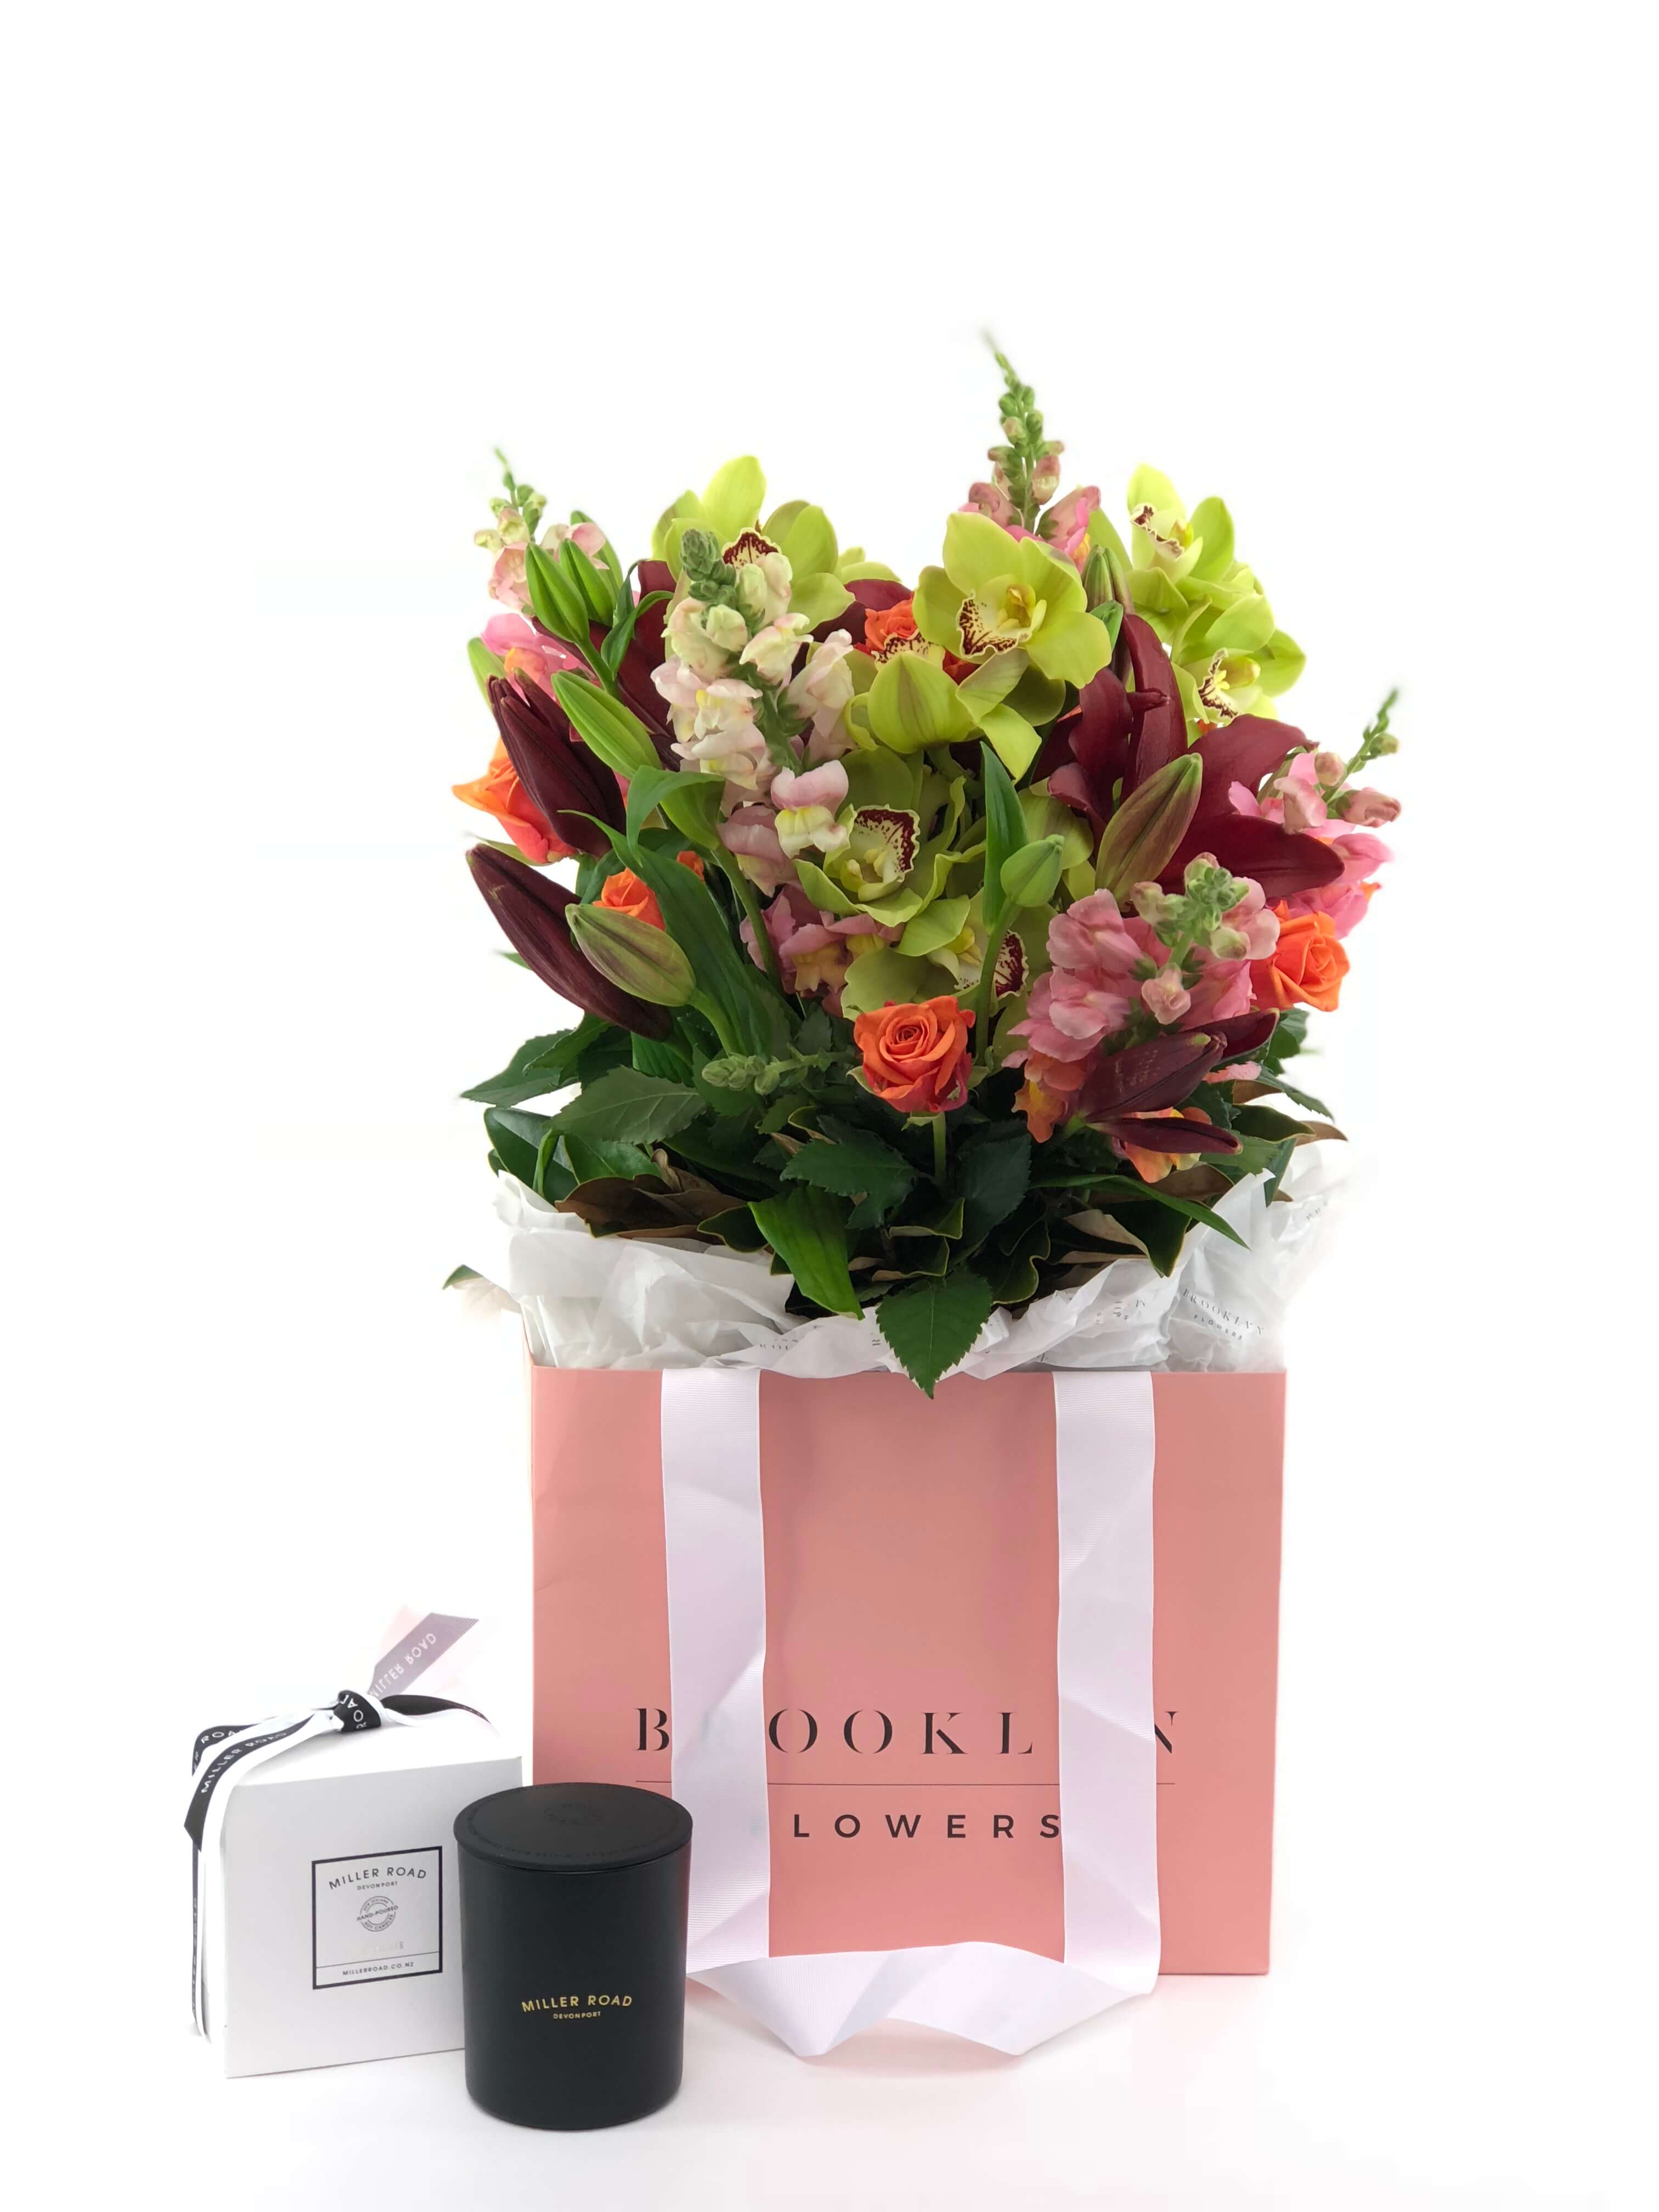 Bouquet Bag and Gift Package, Bouquet Bag & Candle, Bouquet, Cheerful, Brooklyn Flowers, Auckland Florist